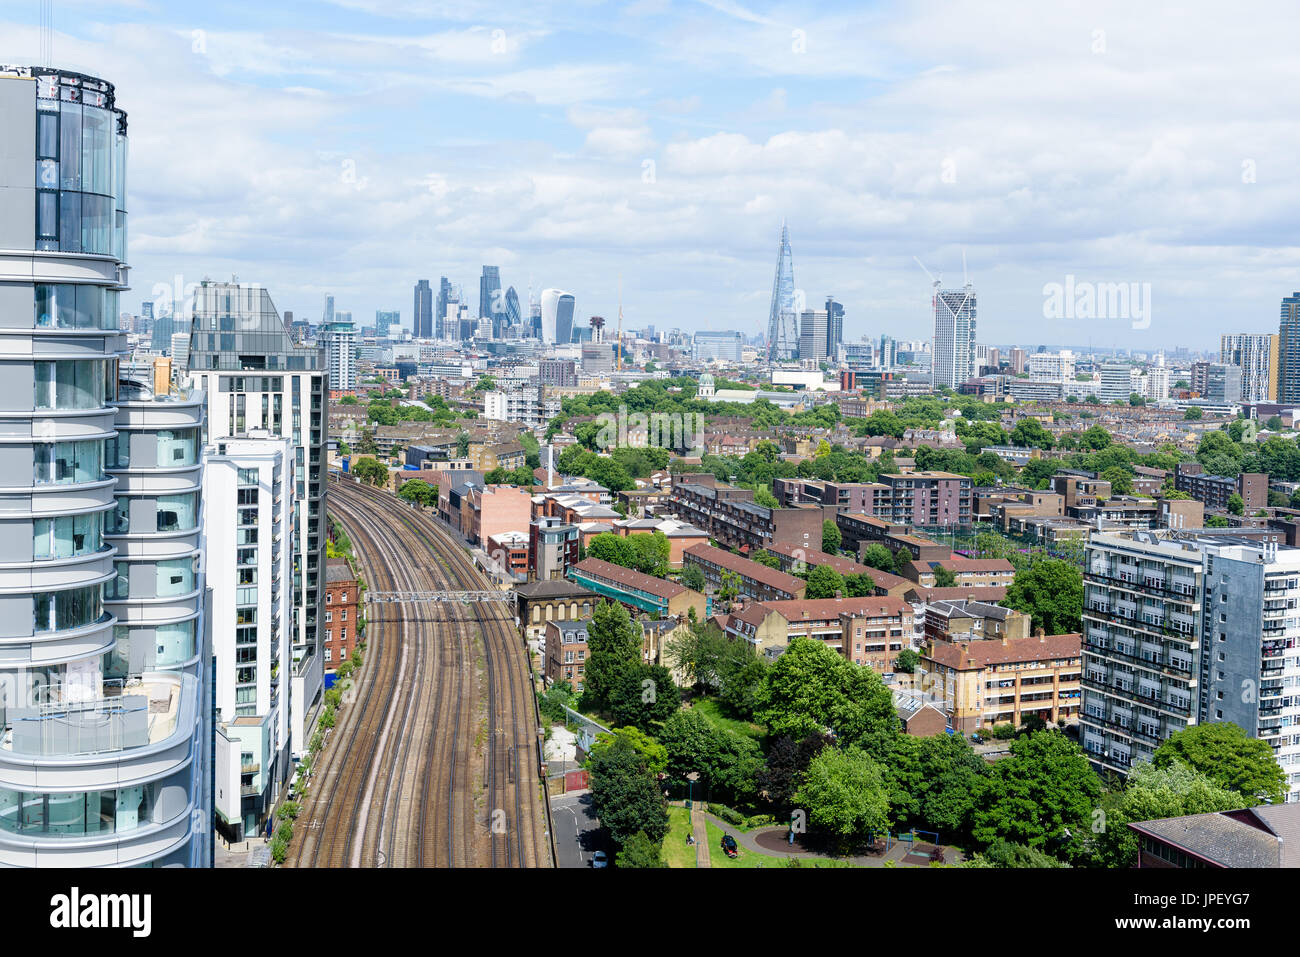 London Skyline - Stock Image